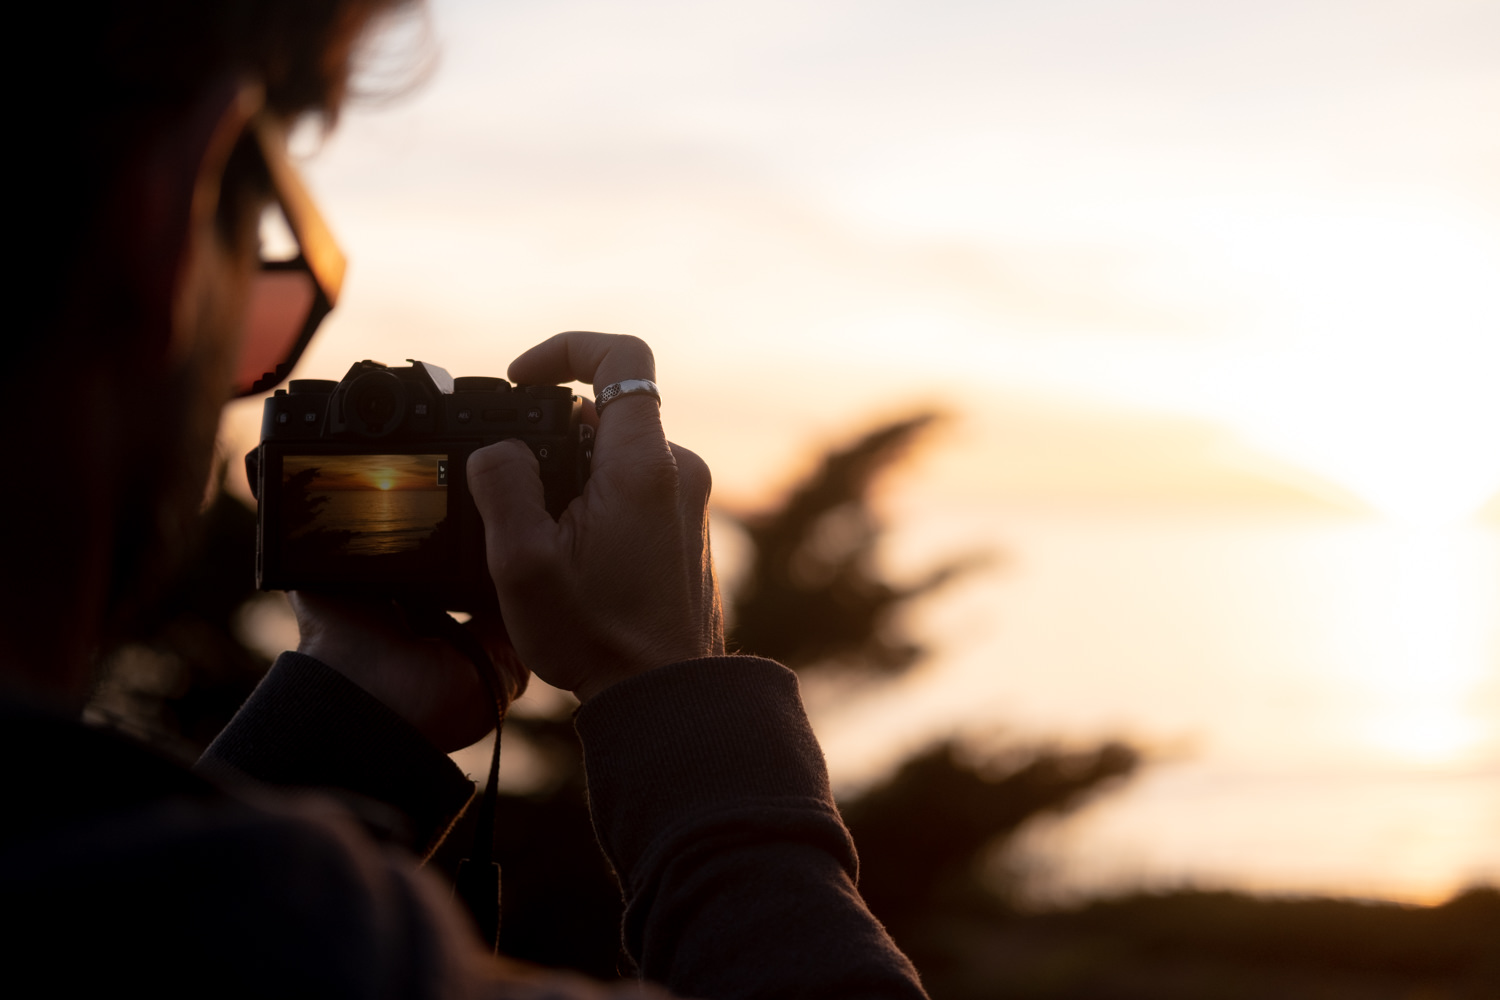 cours photo, atelier photo, balade photo, cours photo Nantes, cours photos pornic, cours photo Vendée, atelier photo Nantes, atelier photo pornic